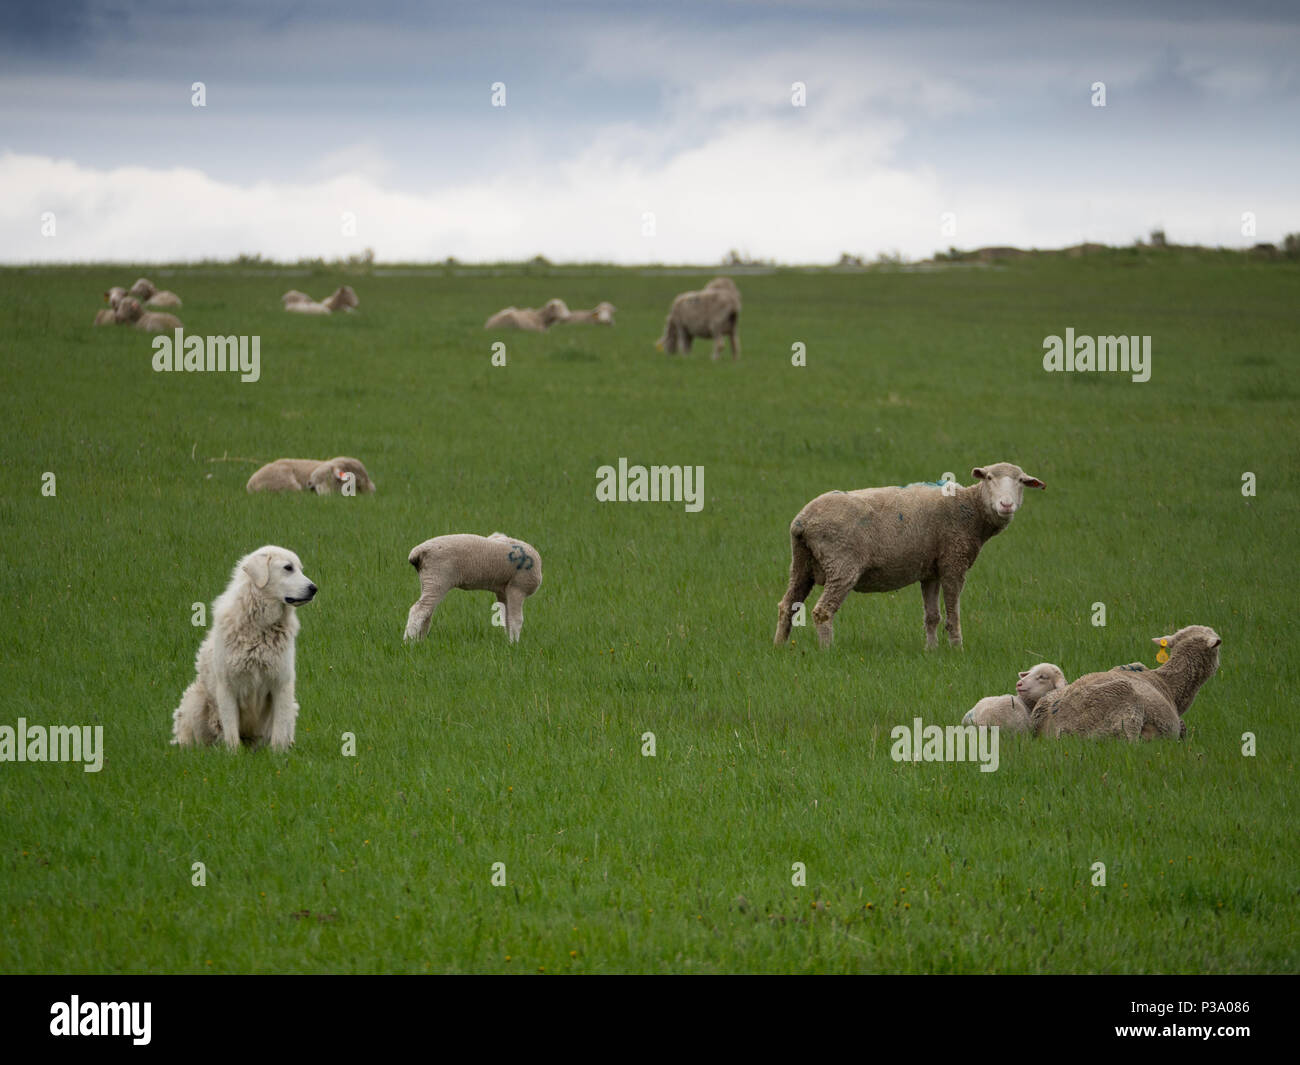 A Great Pryenees dog watching after a flock of sheep in a pasture with thick green grass. - Stock Image